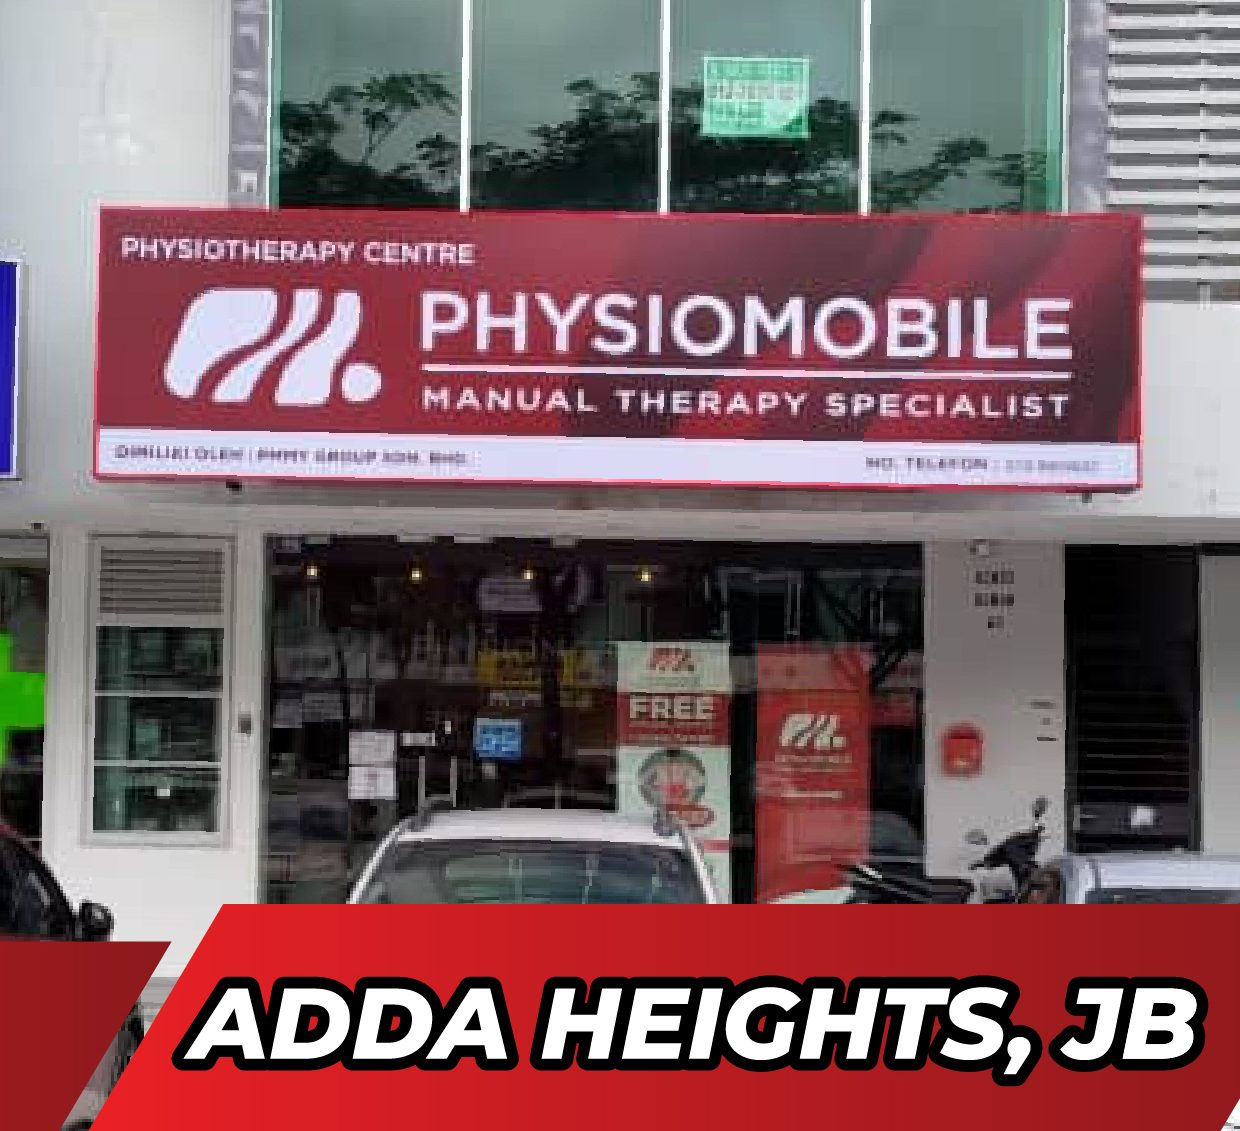 ADDA HEIGHTS